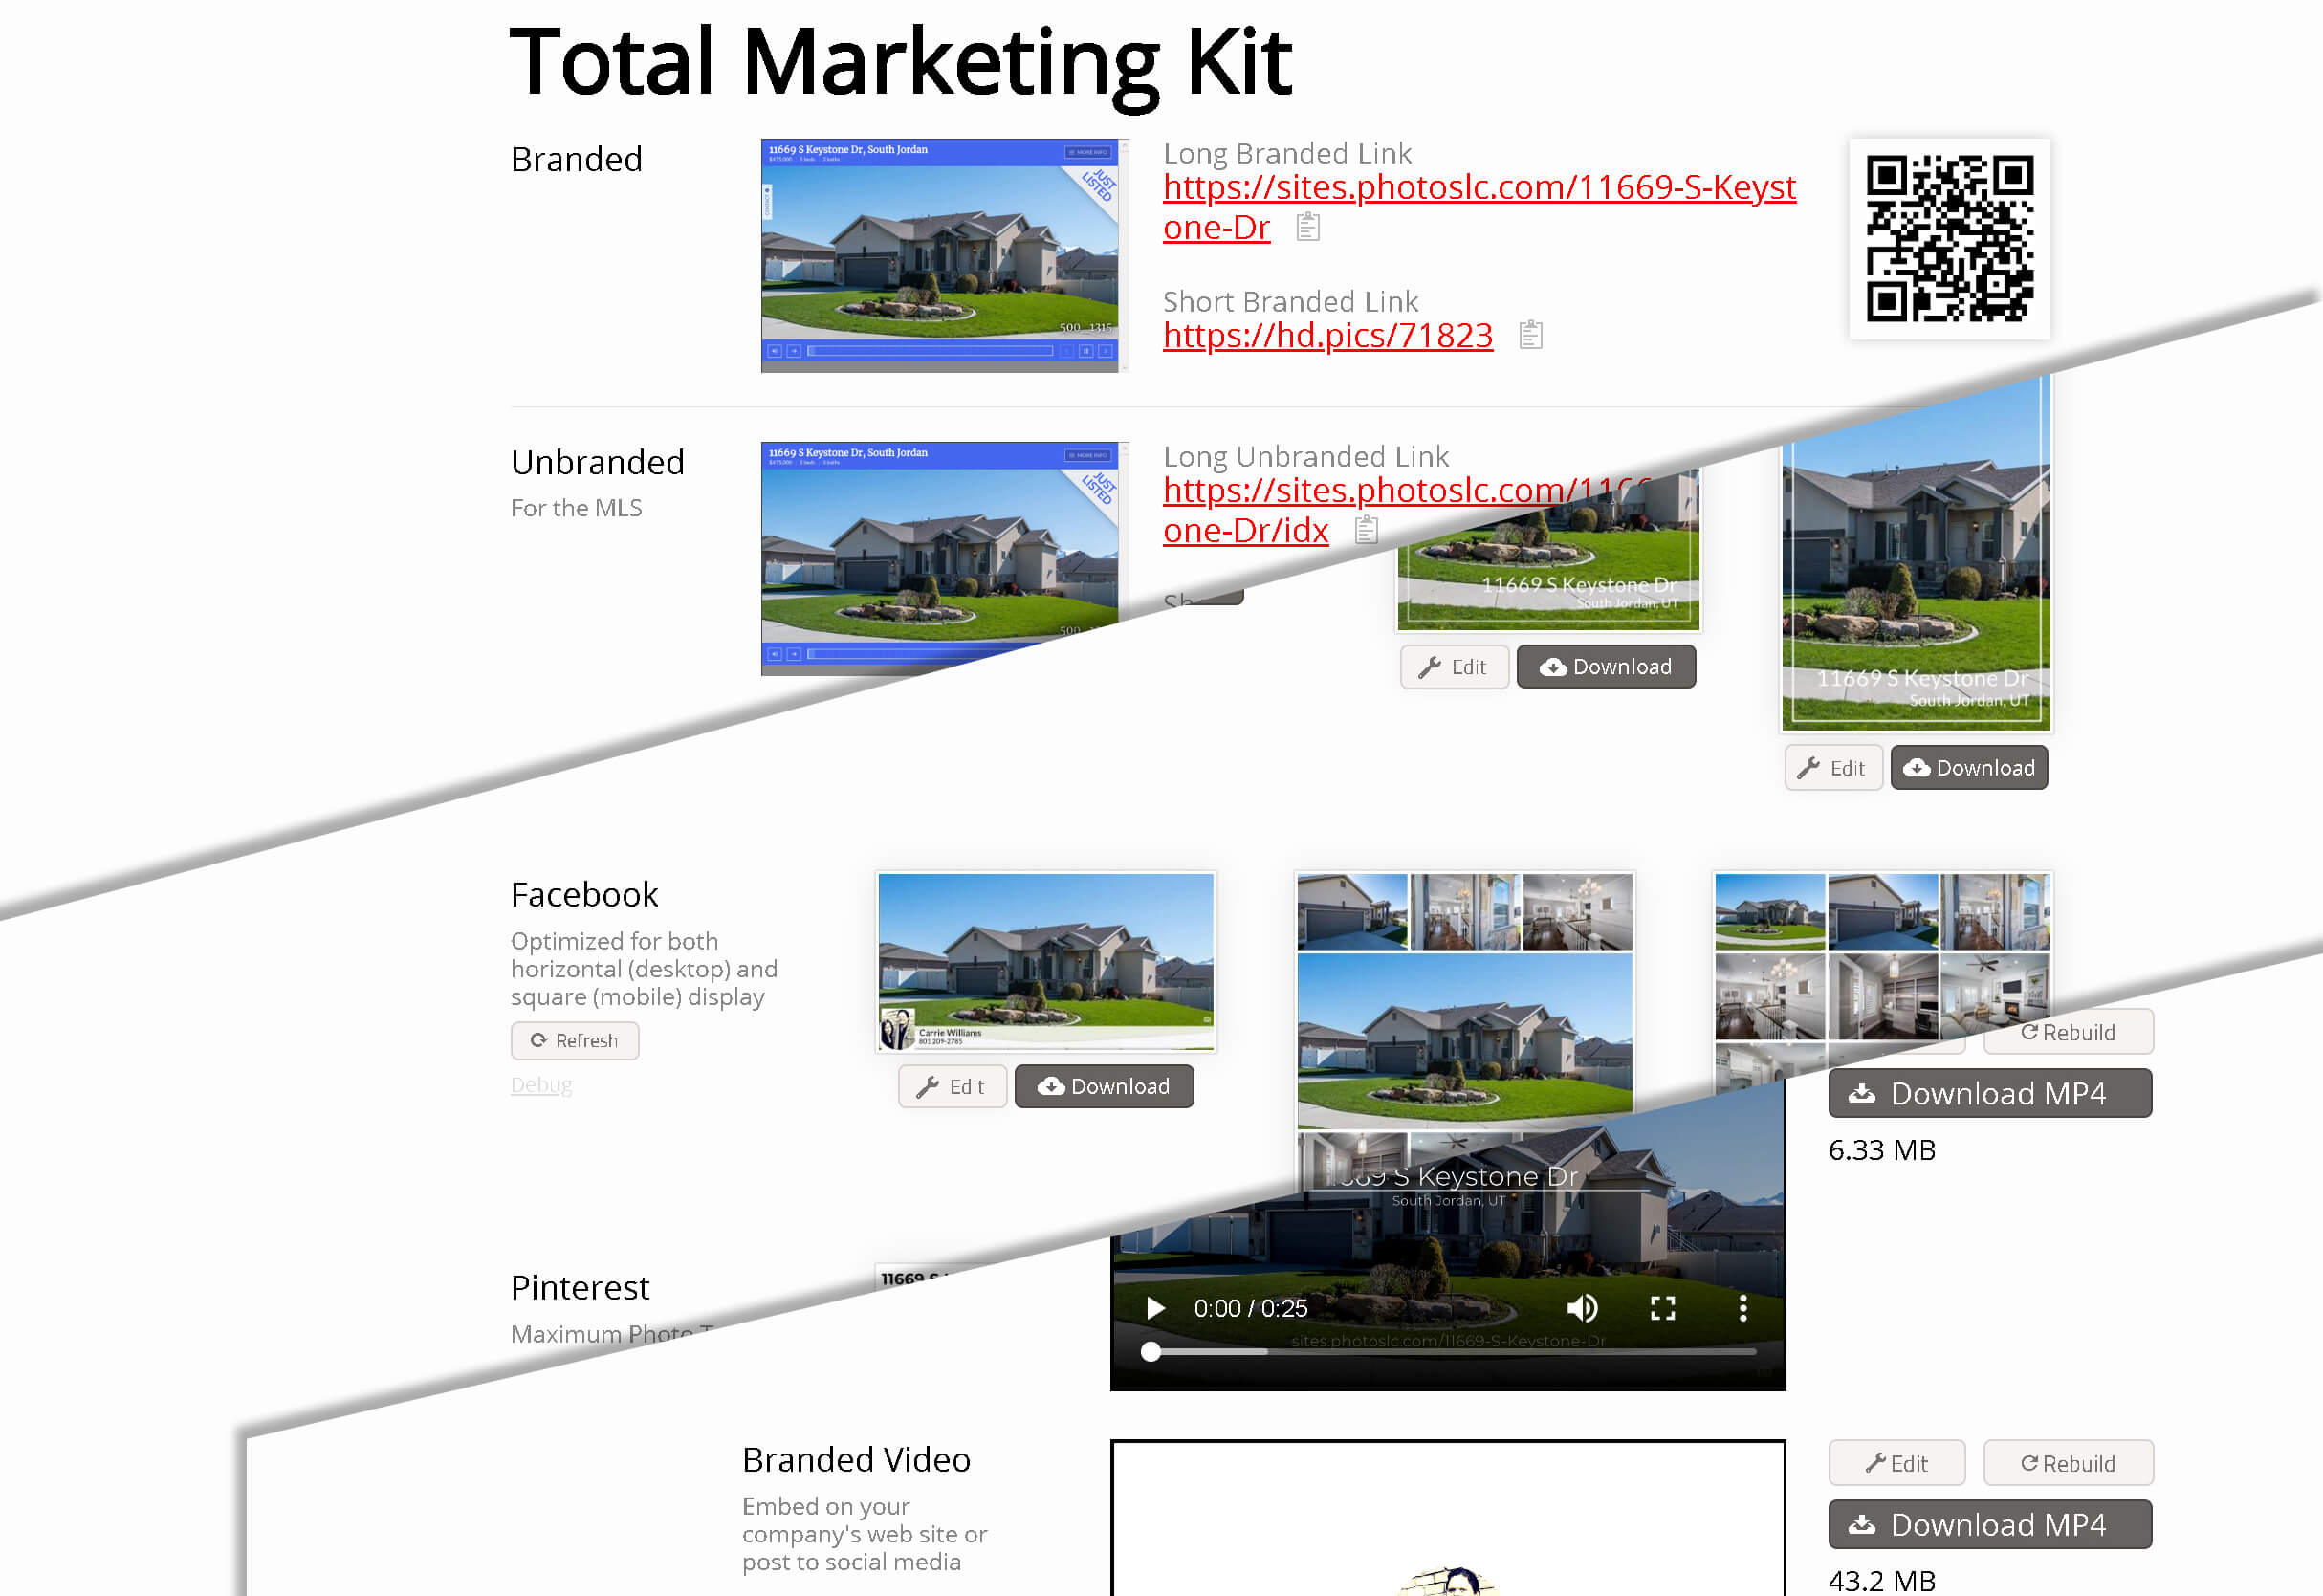 New Social Media and Video Marketing Kit